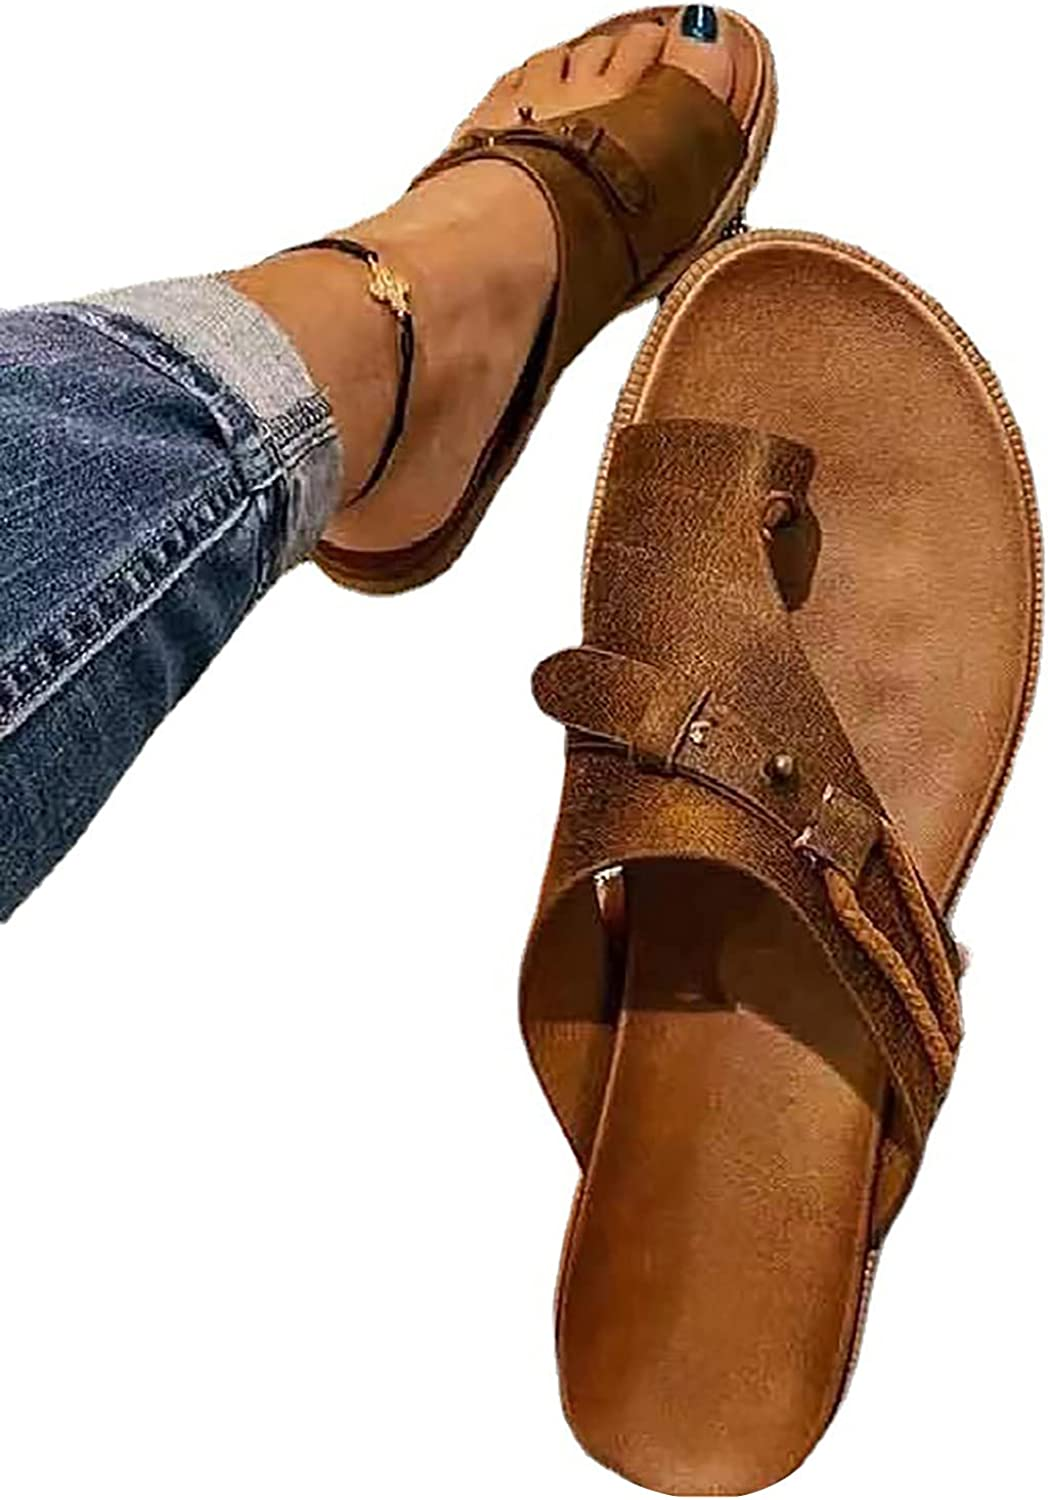 Women Flip Flop Mesa Mall Slippers New Shipping Free Casual Summer Orthopedic Shoes Comfy La